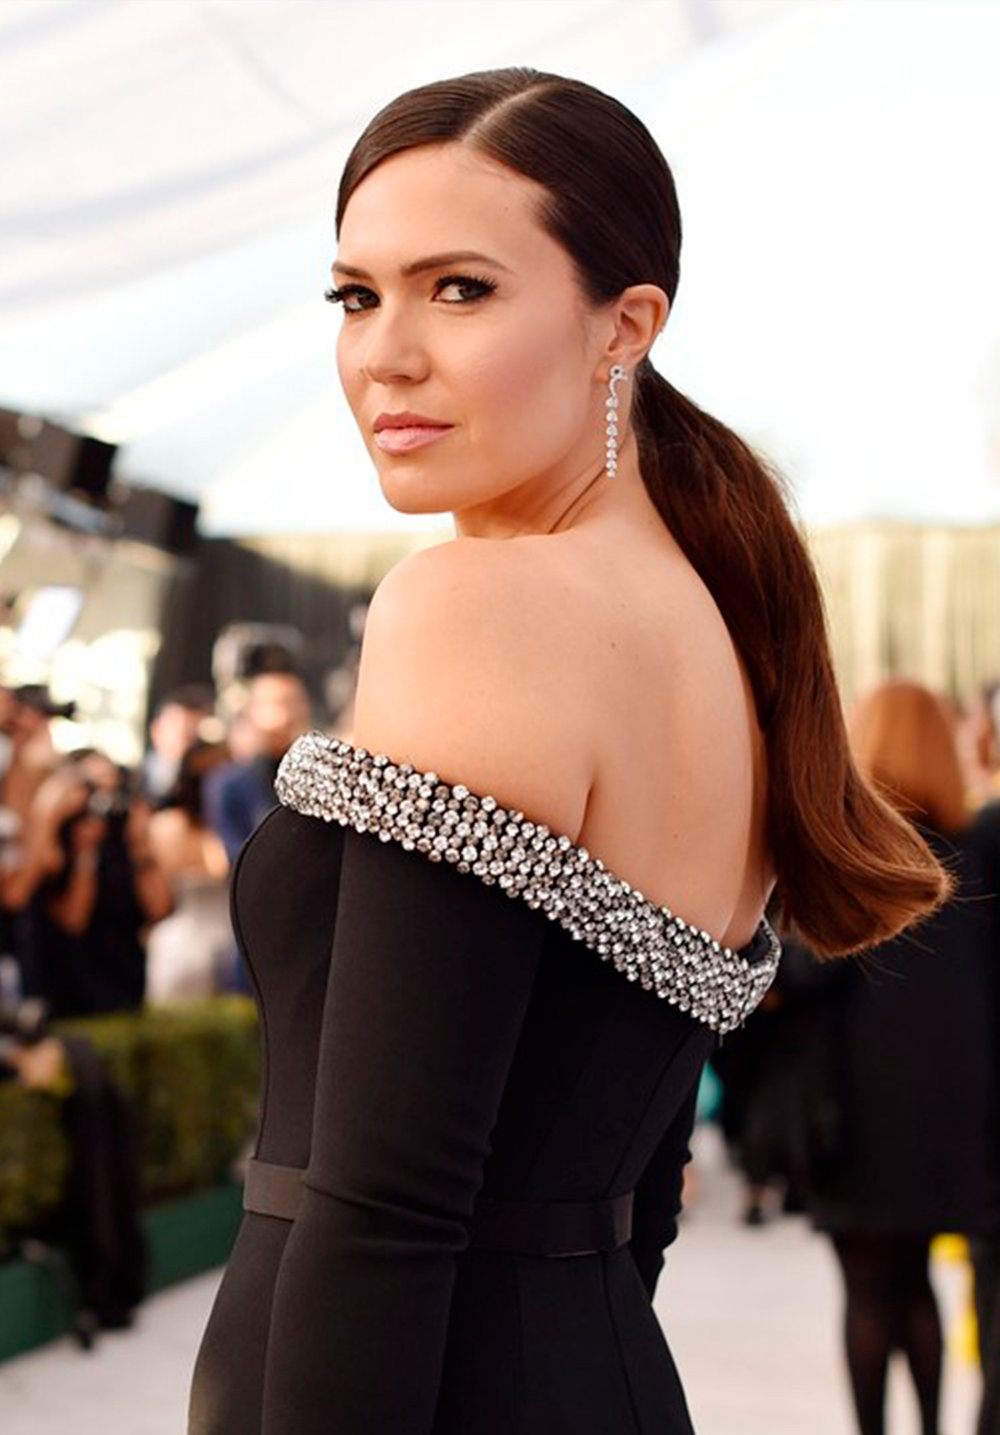 MANDY MOORE SAG AWARDS 2019 - FASHION WITH PURPOSE